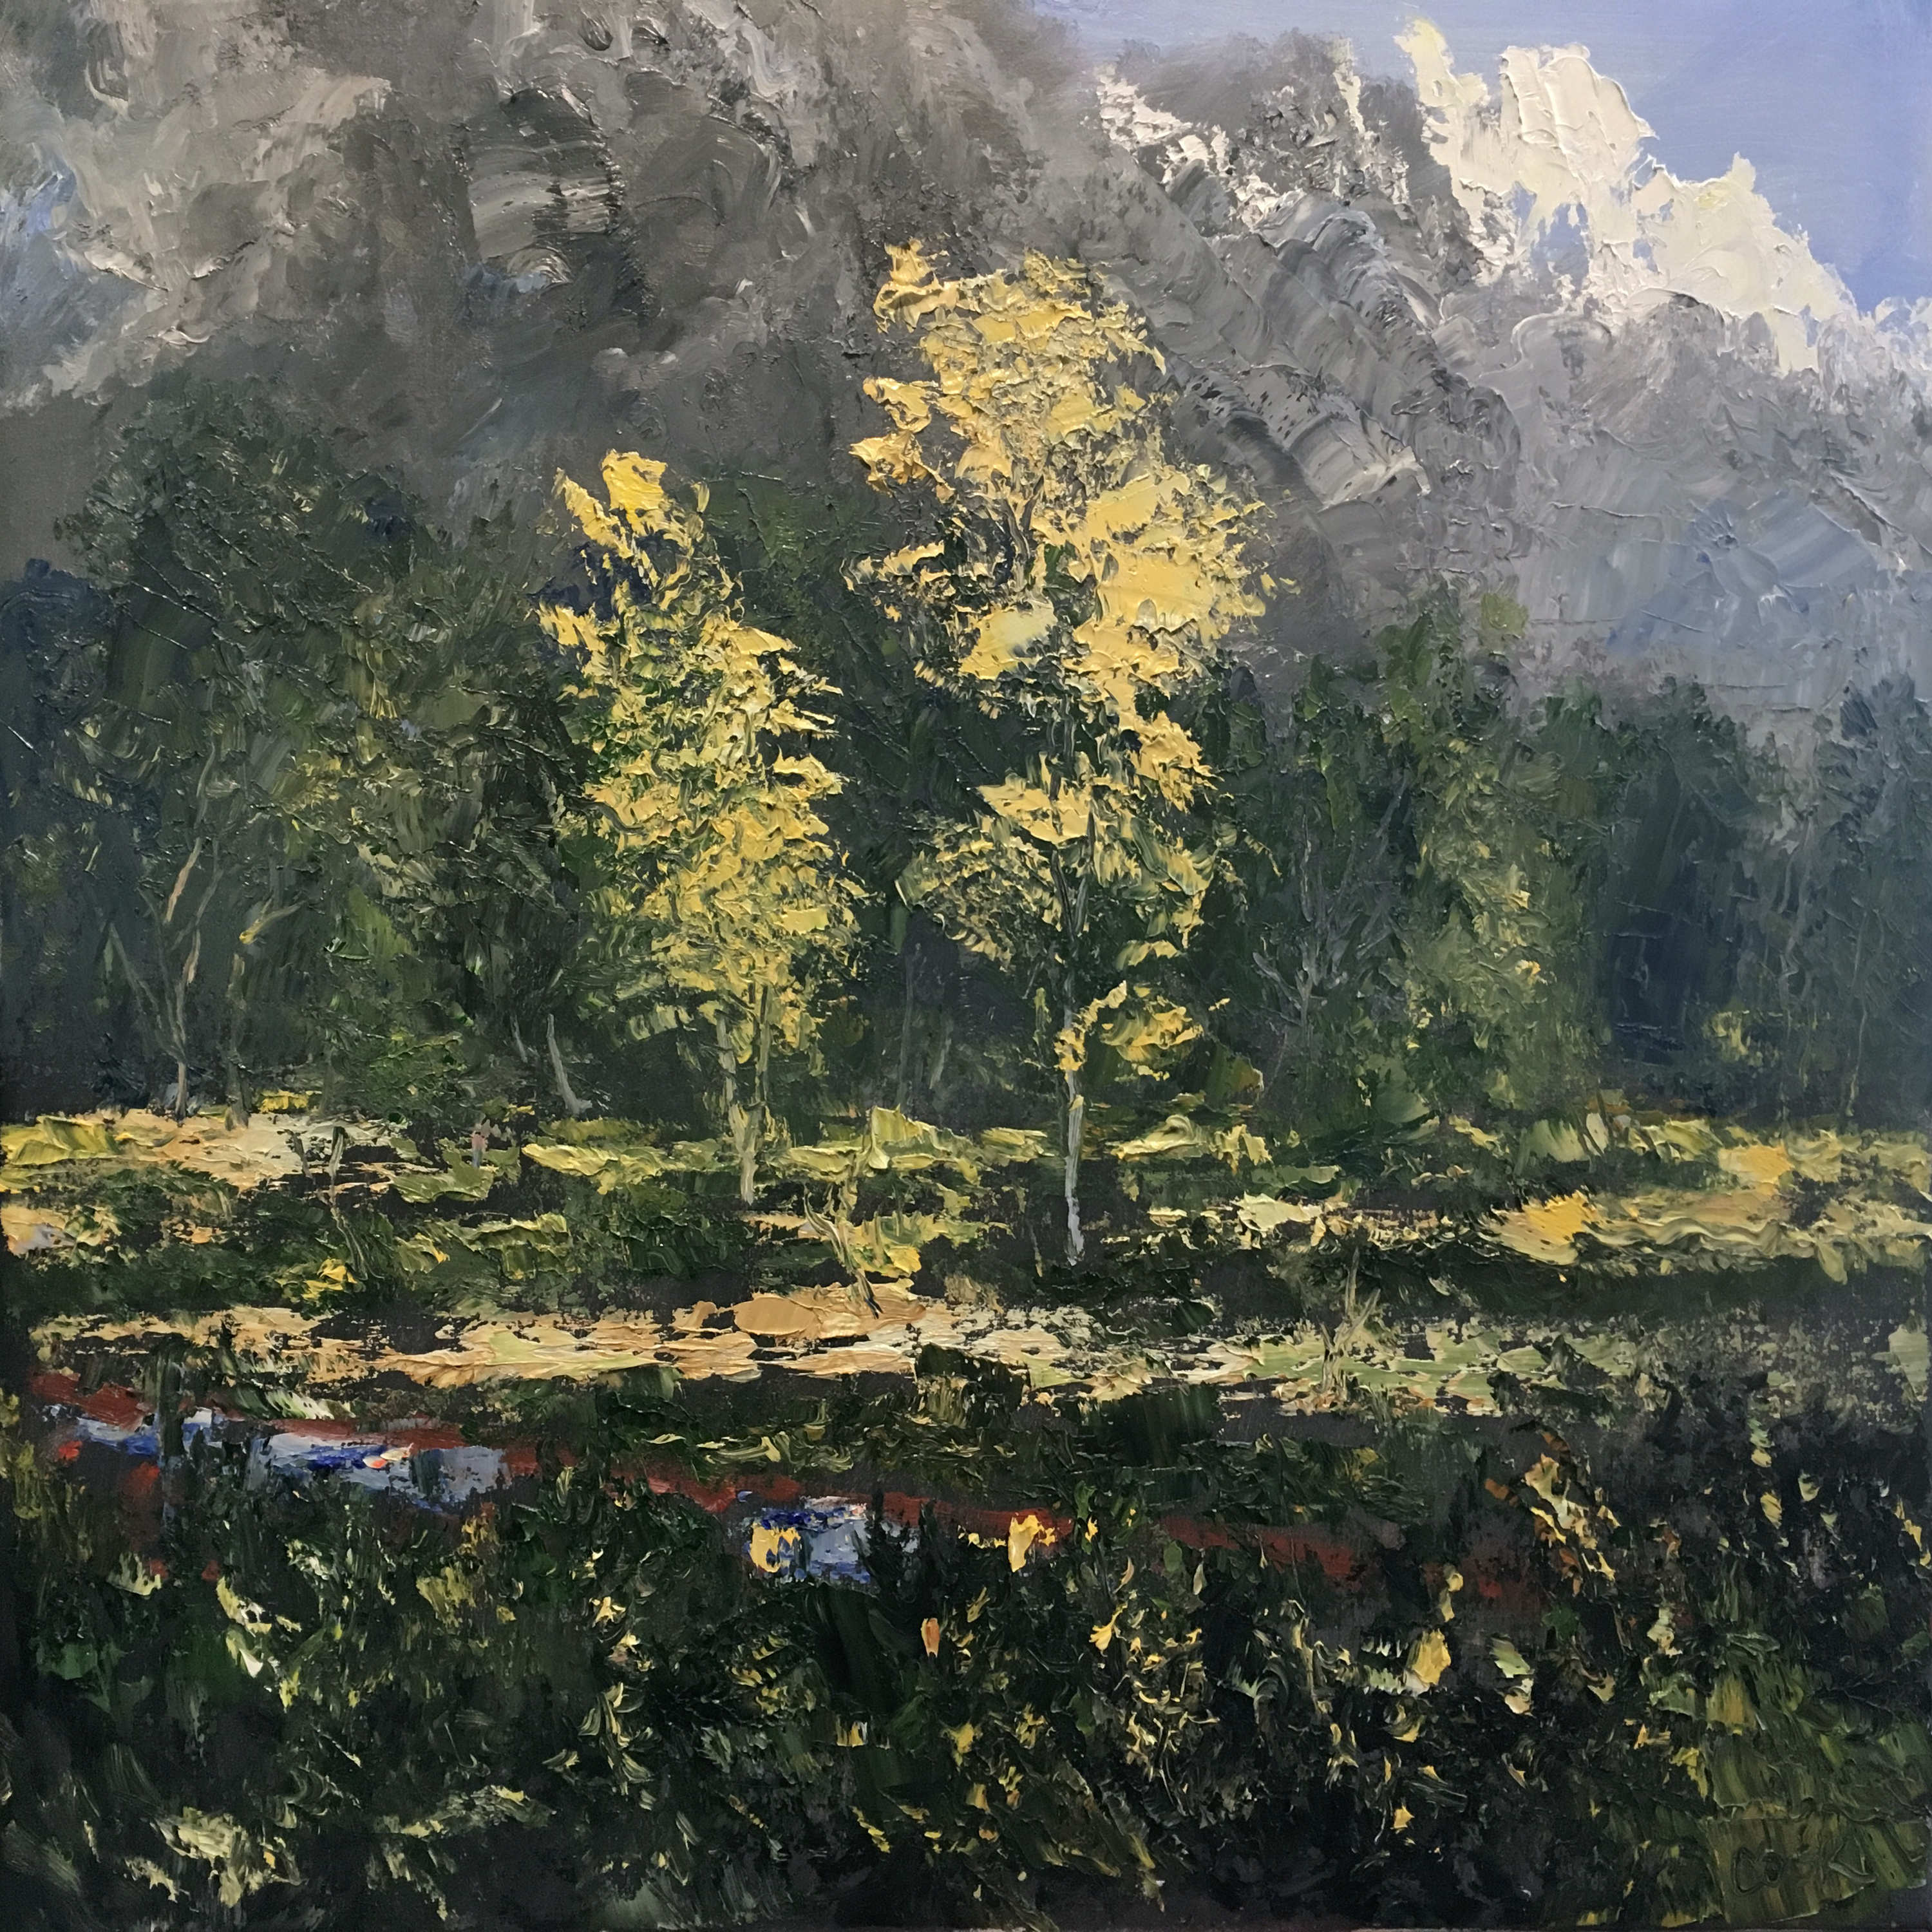 James pringle cook east cemetery road oil on canvas 24 x 24 4800 n9gkc4